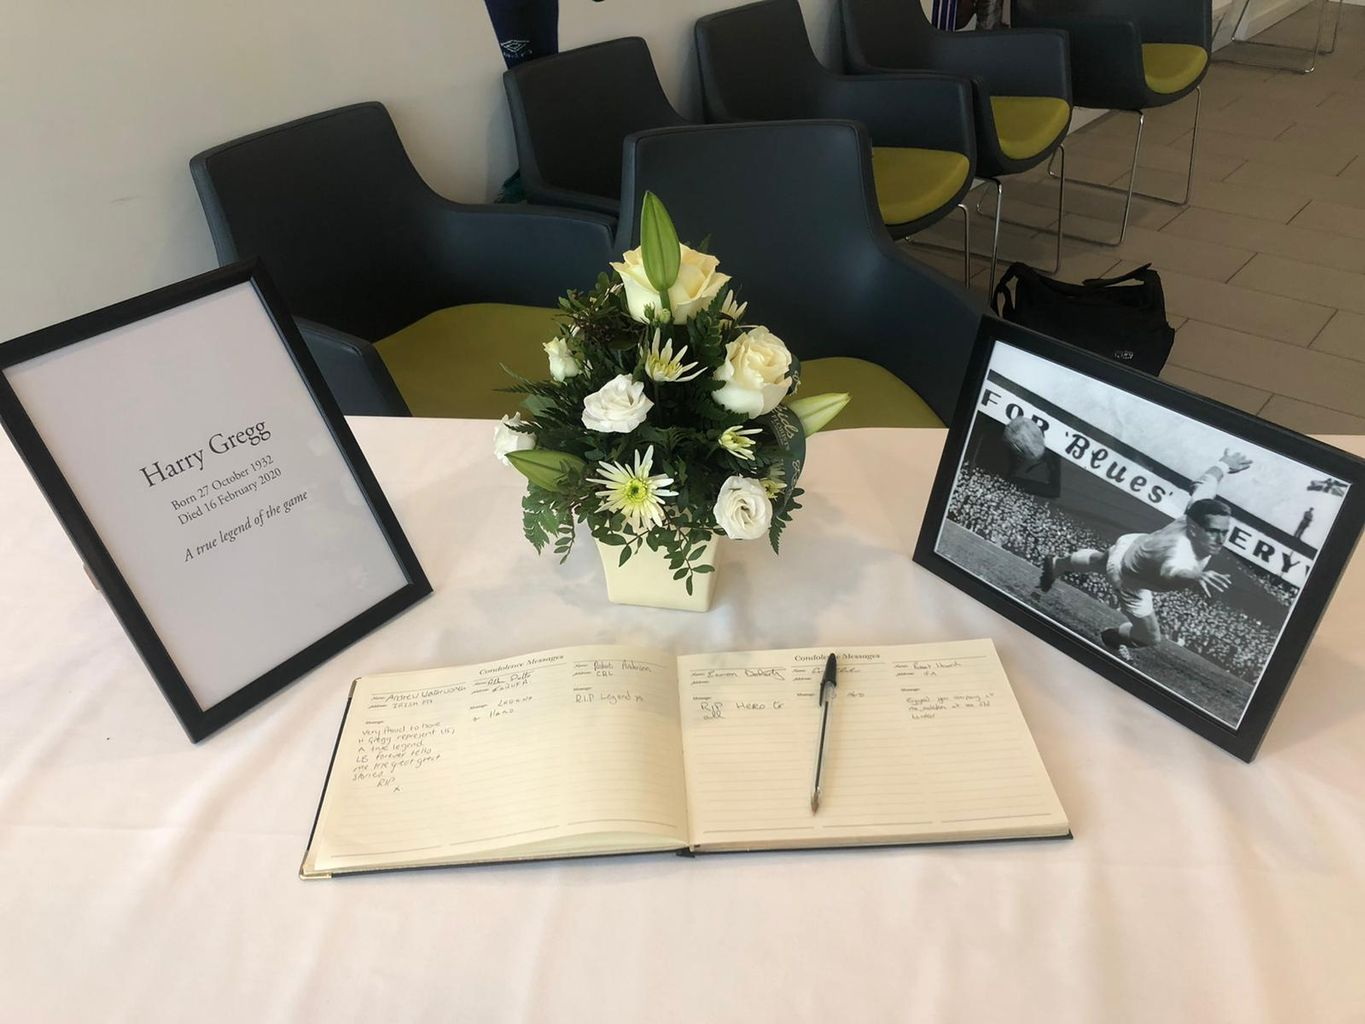 Book of Condolences opens for Harry Greg at Windsor Park